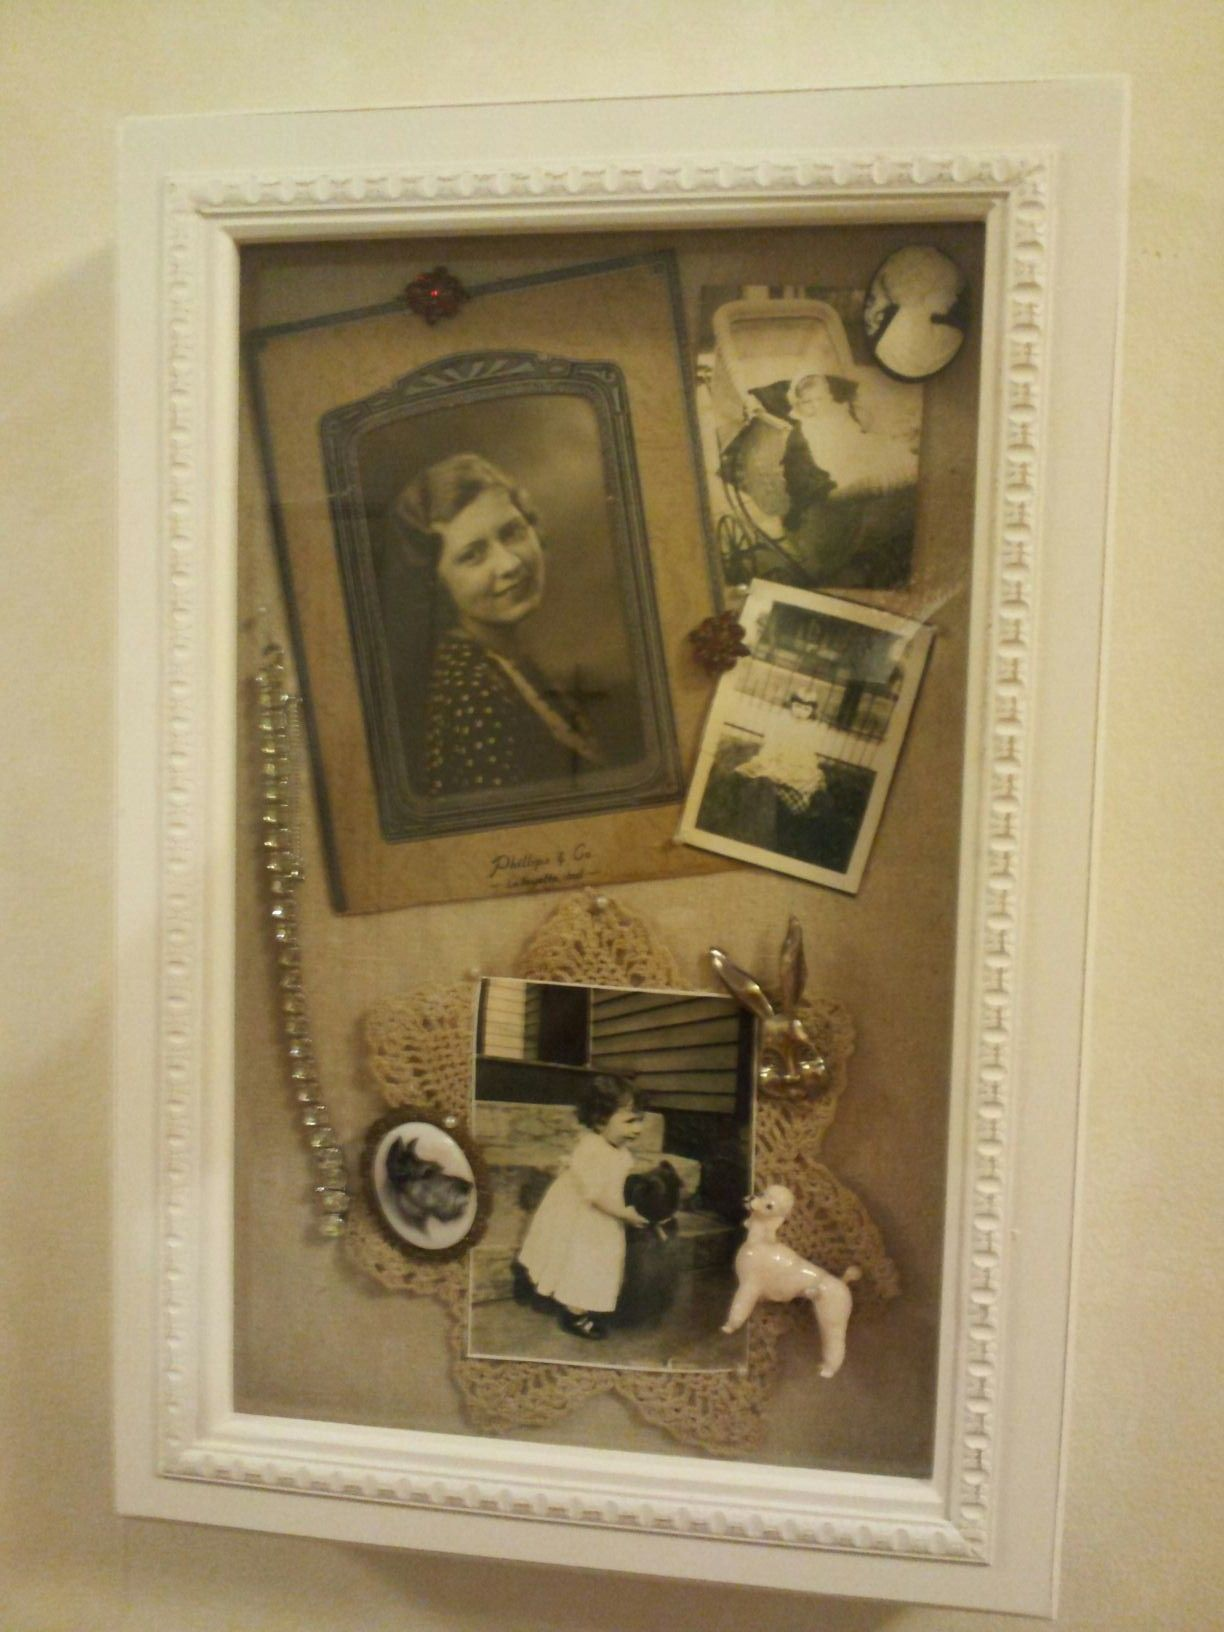 This is the another shadow box I bought at TJ Maxx to put in my ...